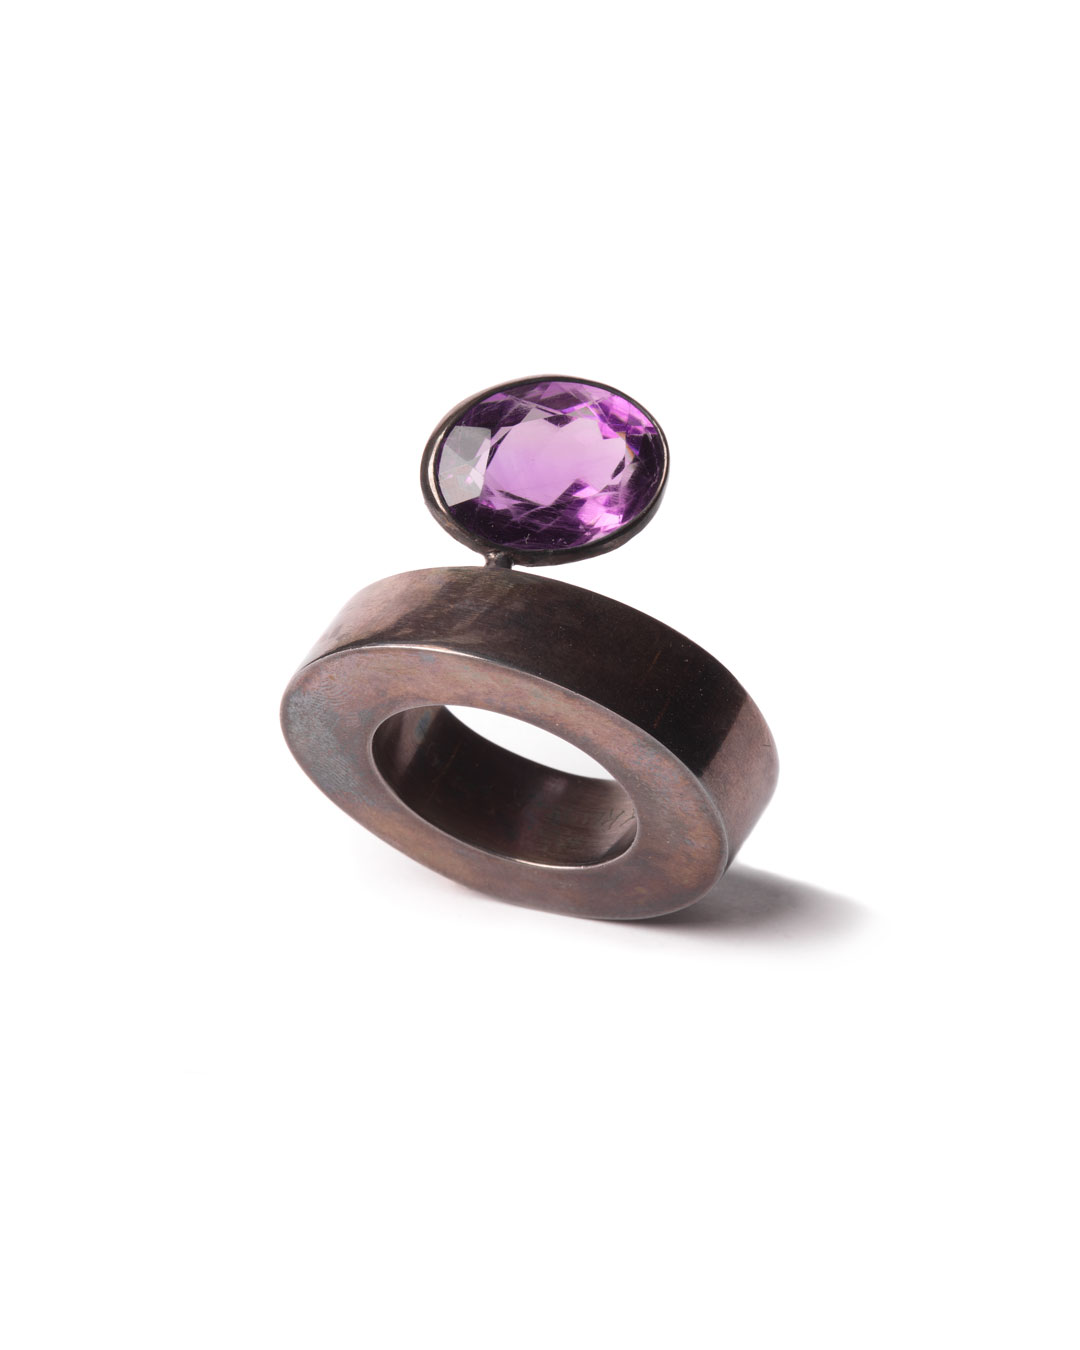 Winfried Krüger, untitled, 1988, ring; oxidised silver, amethyst, 40 x 35 mm, €1455